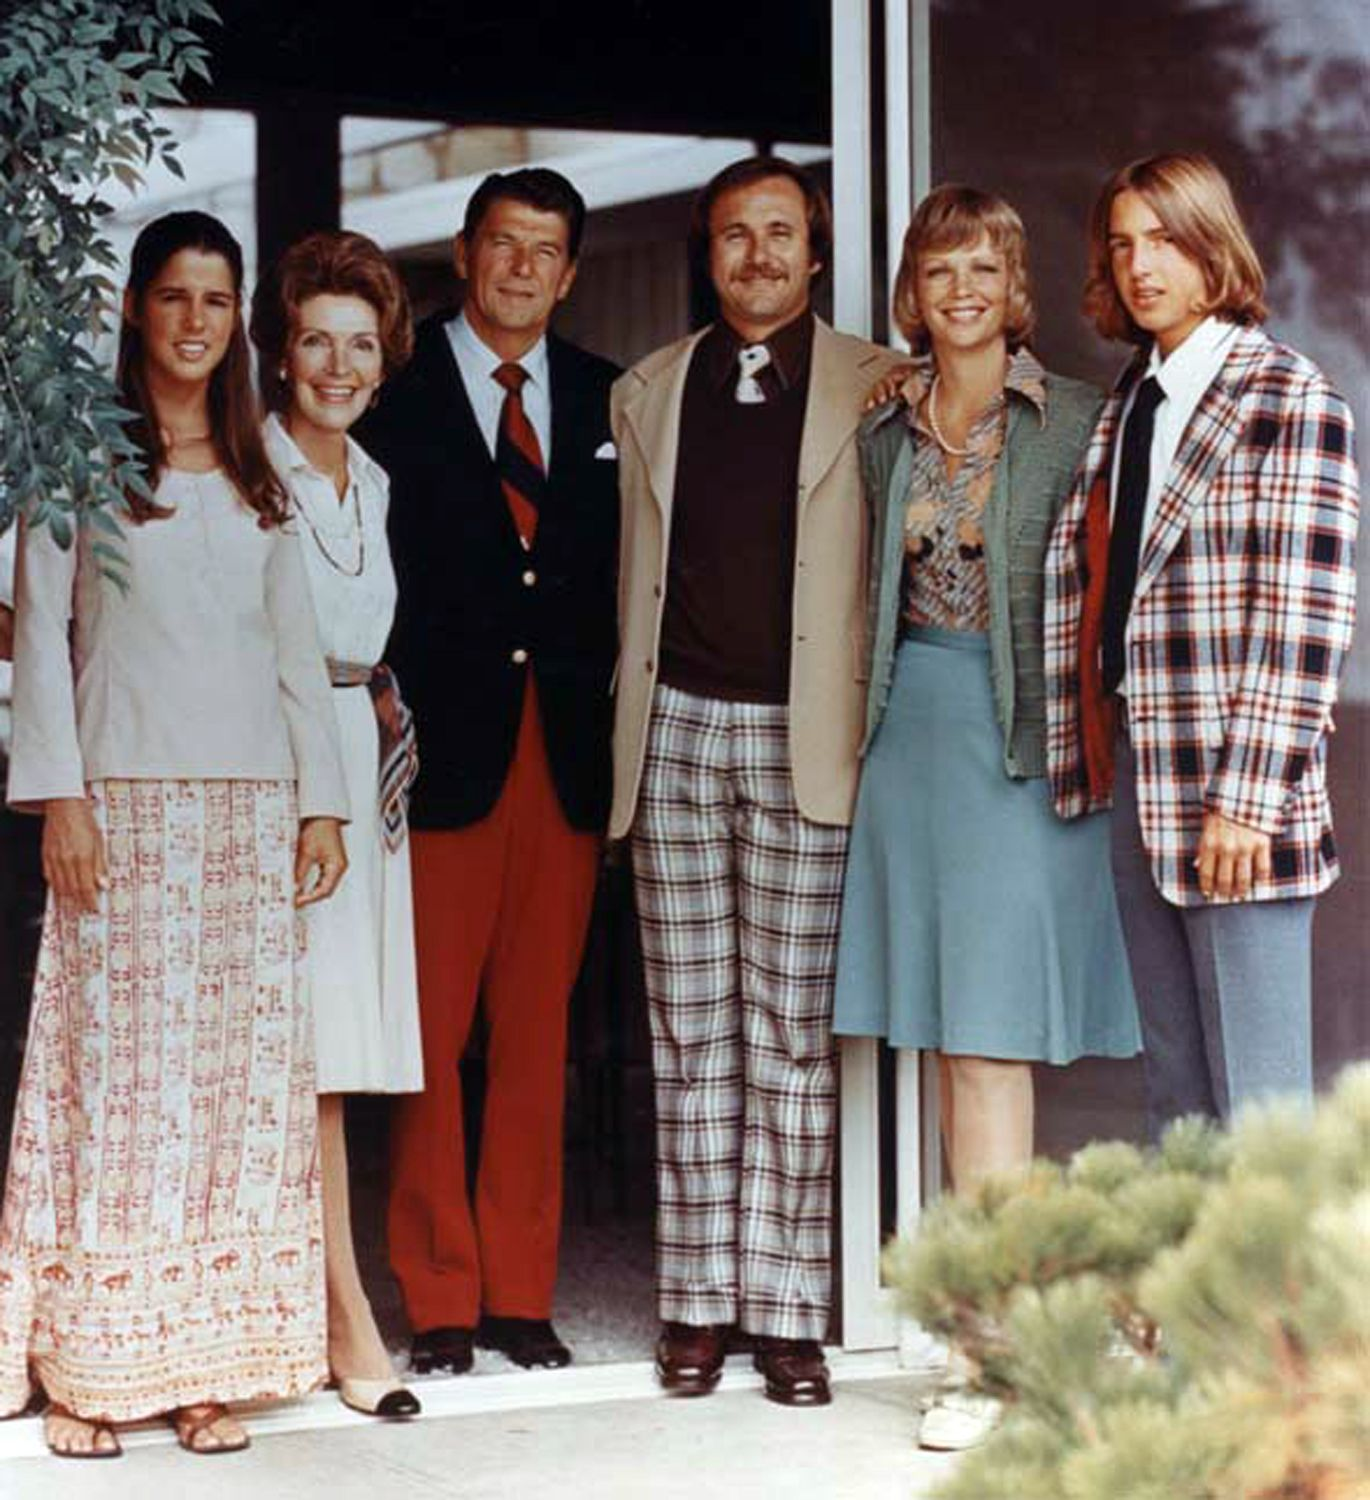 The Regan Family looking very 70s when he was Gov of Cali ('67-75) at their home in Pacific Palisades, Cali (an area close to Santa Monica Beach) - L-R Patti, Nancy, Ronnie, Michael, Maureen and Ron Jr.